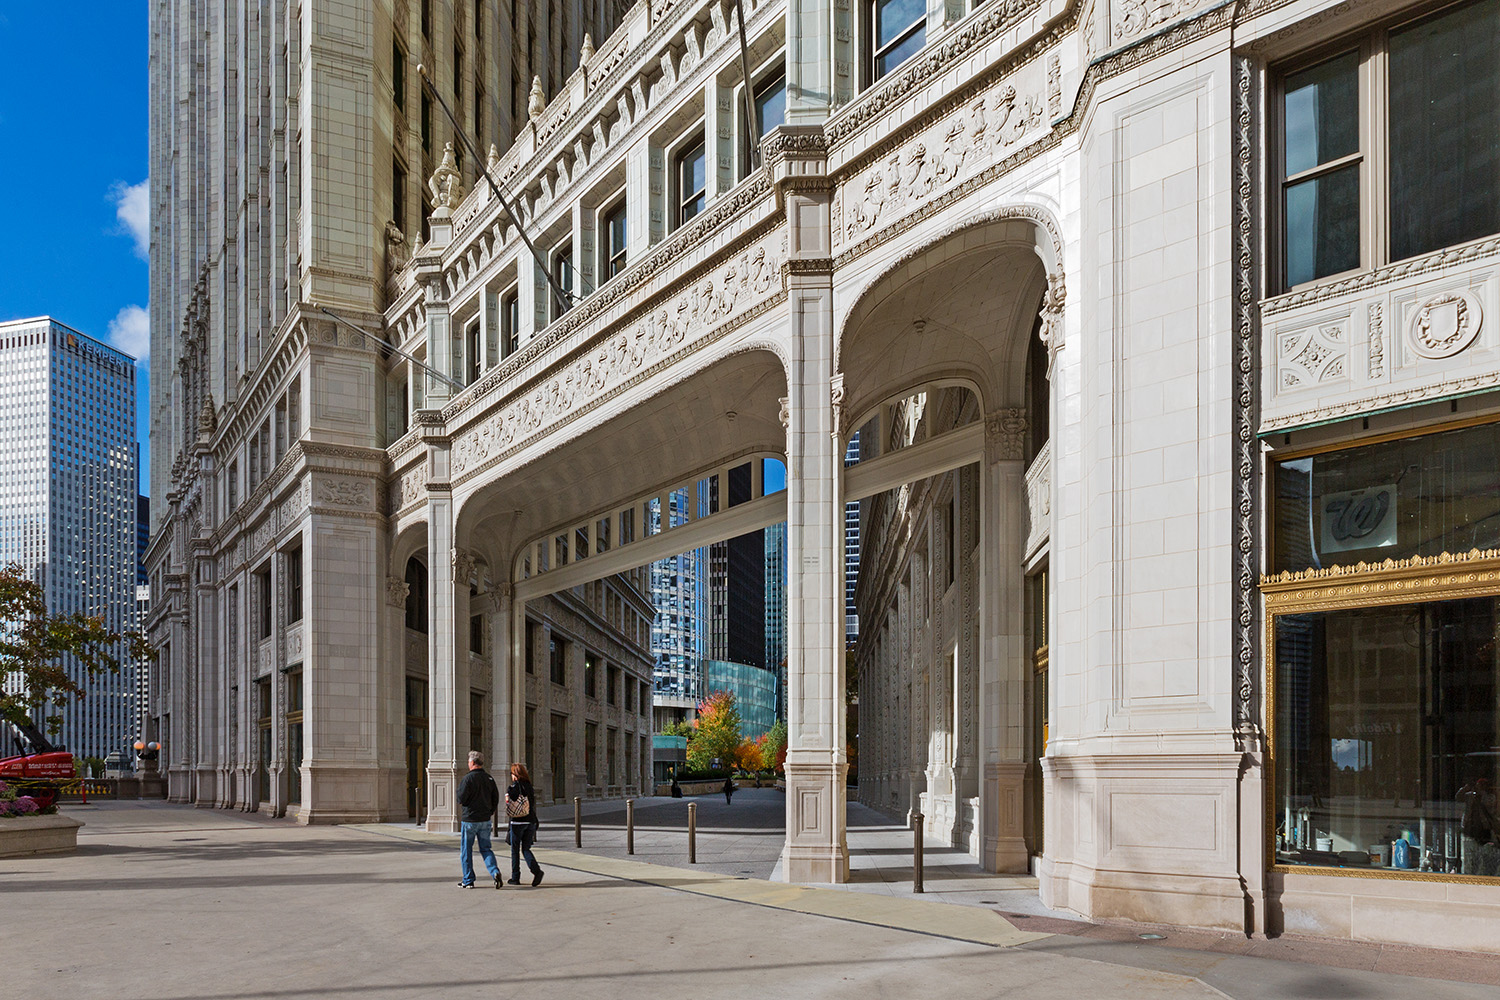 Wrigley Building / Graham, Anderson, Probst & White / Chicago IL / For The New York Times